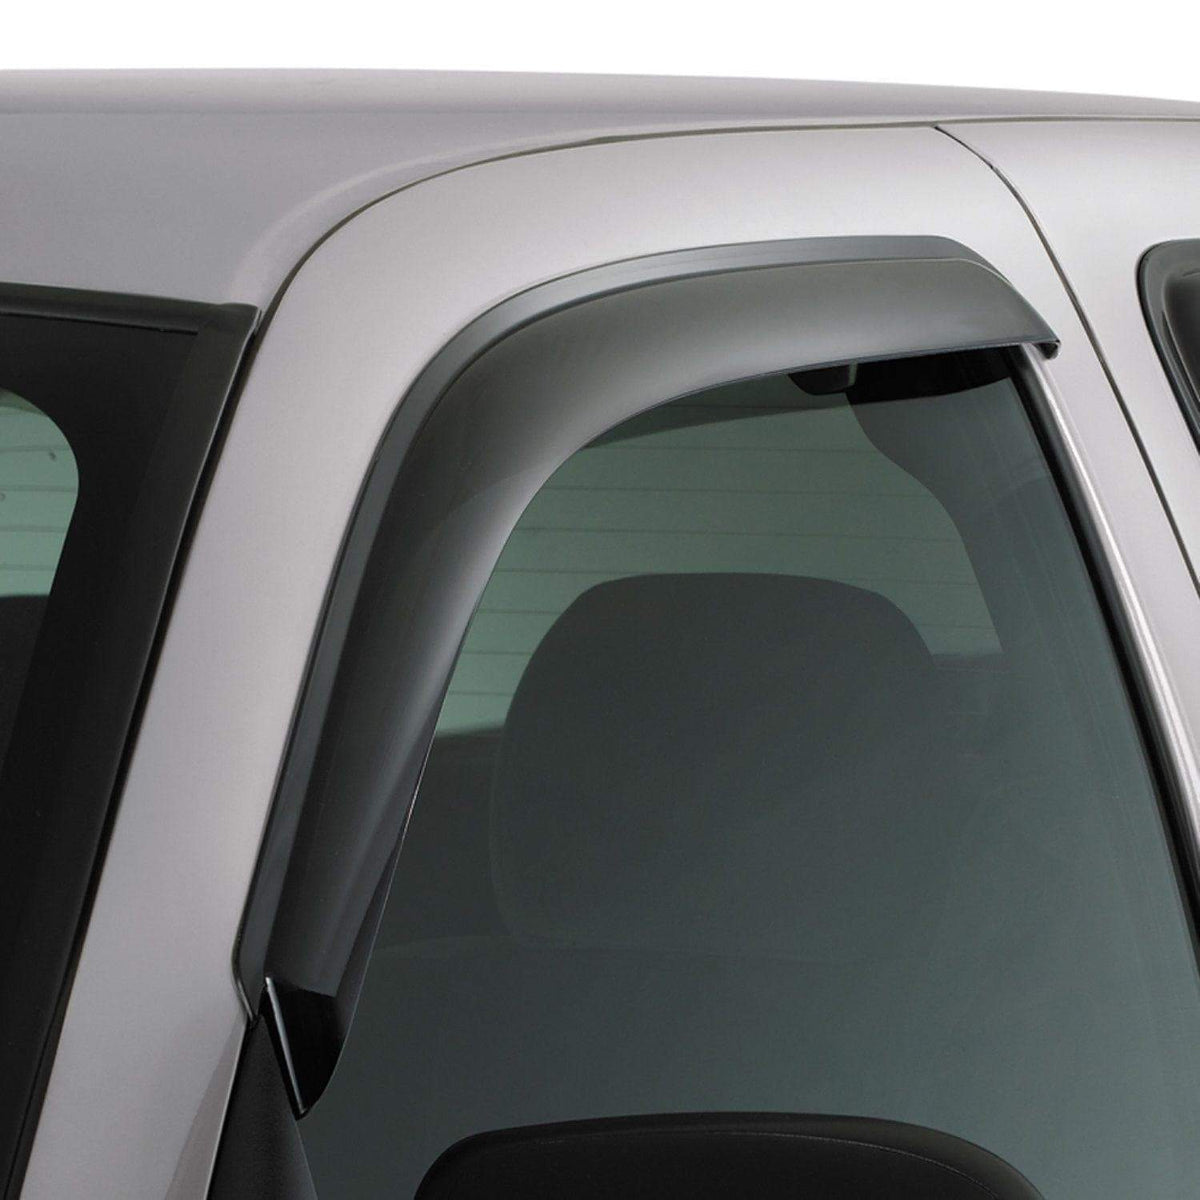 AVS Original Ventvisor 2-Piece Dark Smoke Window Deflector Set | 2015-2020 Ford F-150 Standard Cab (92971)